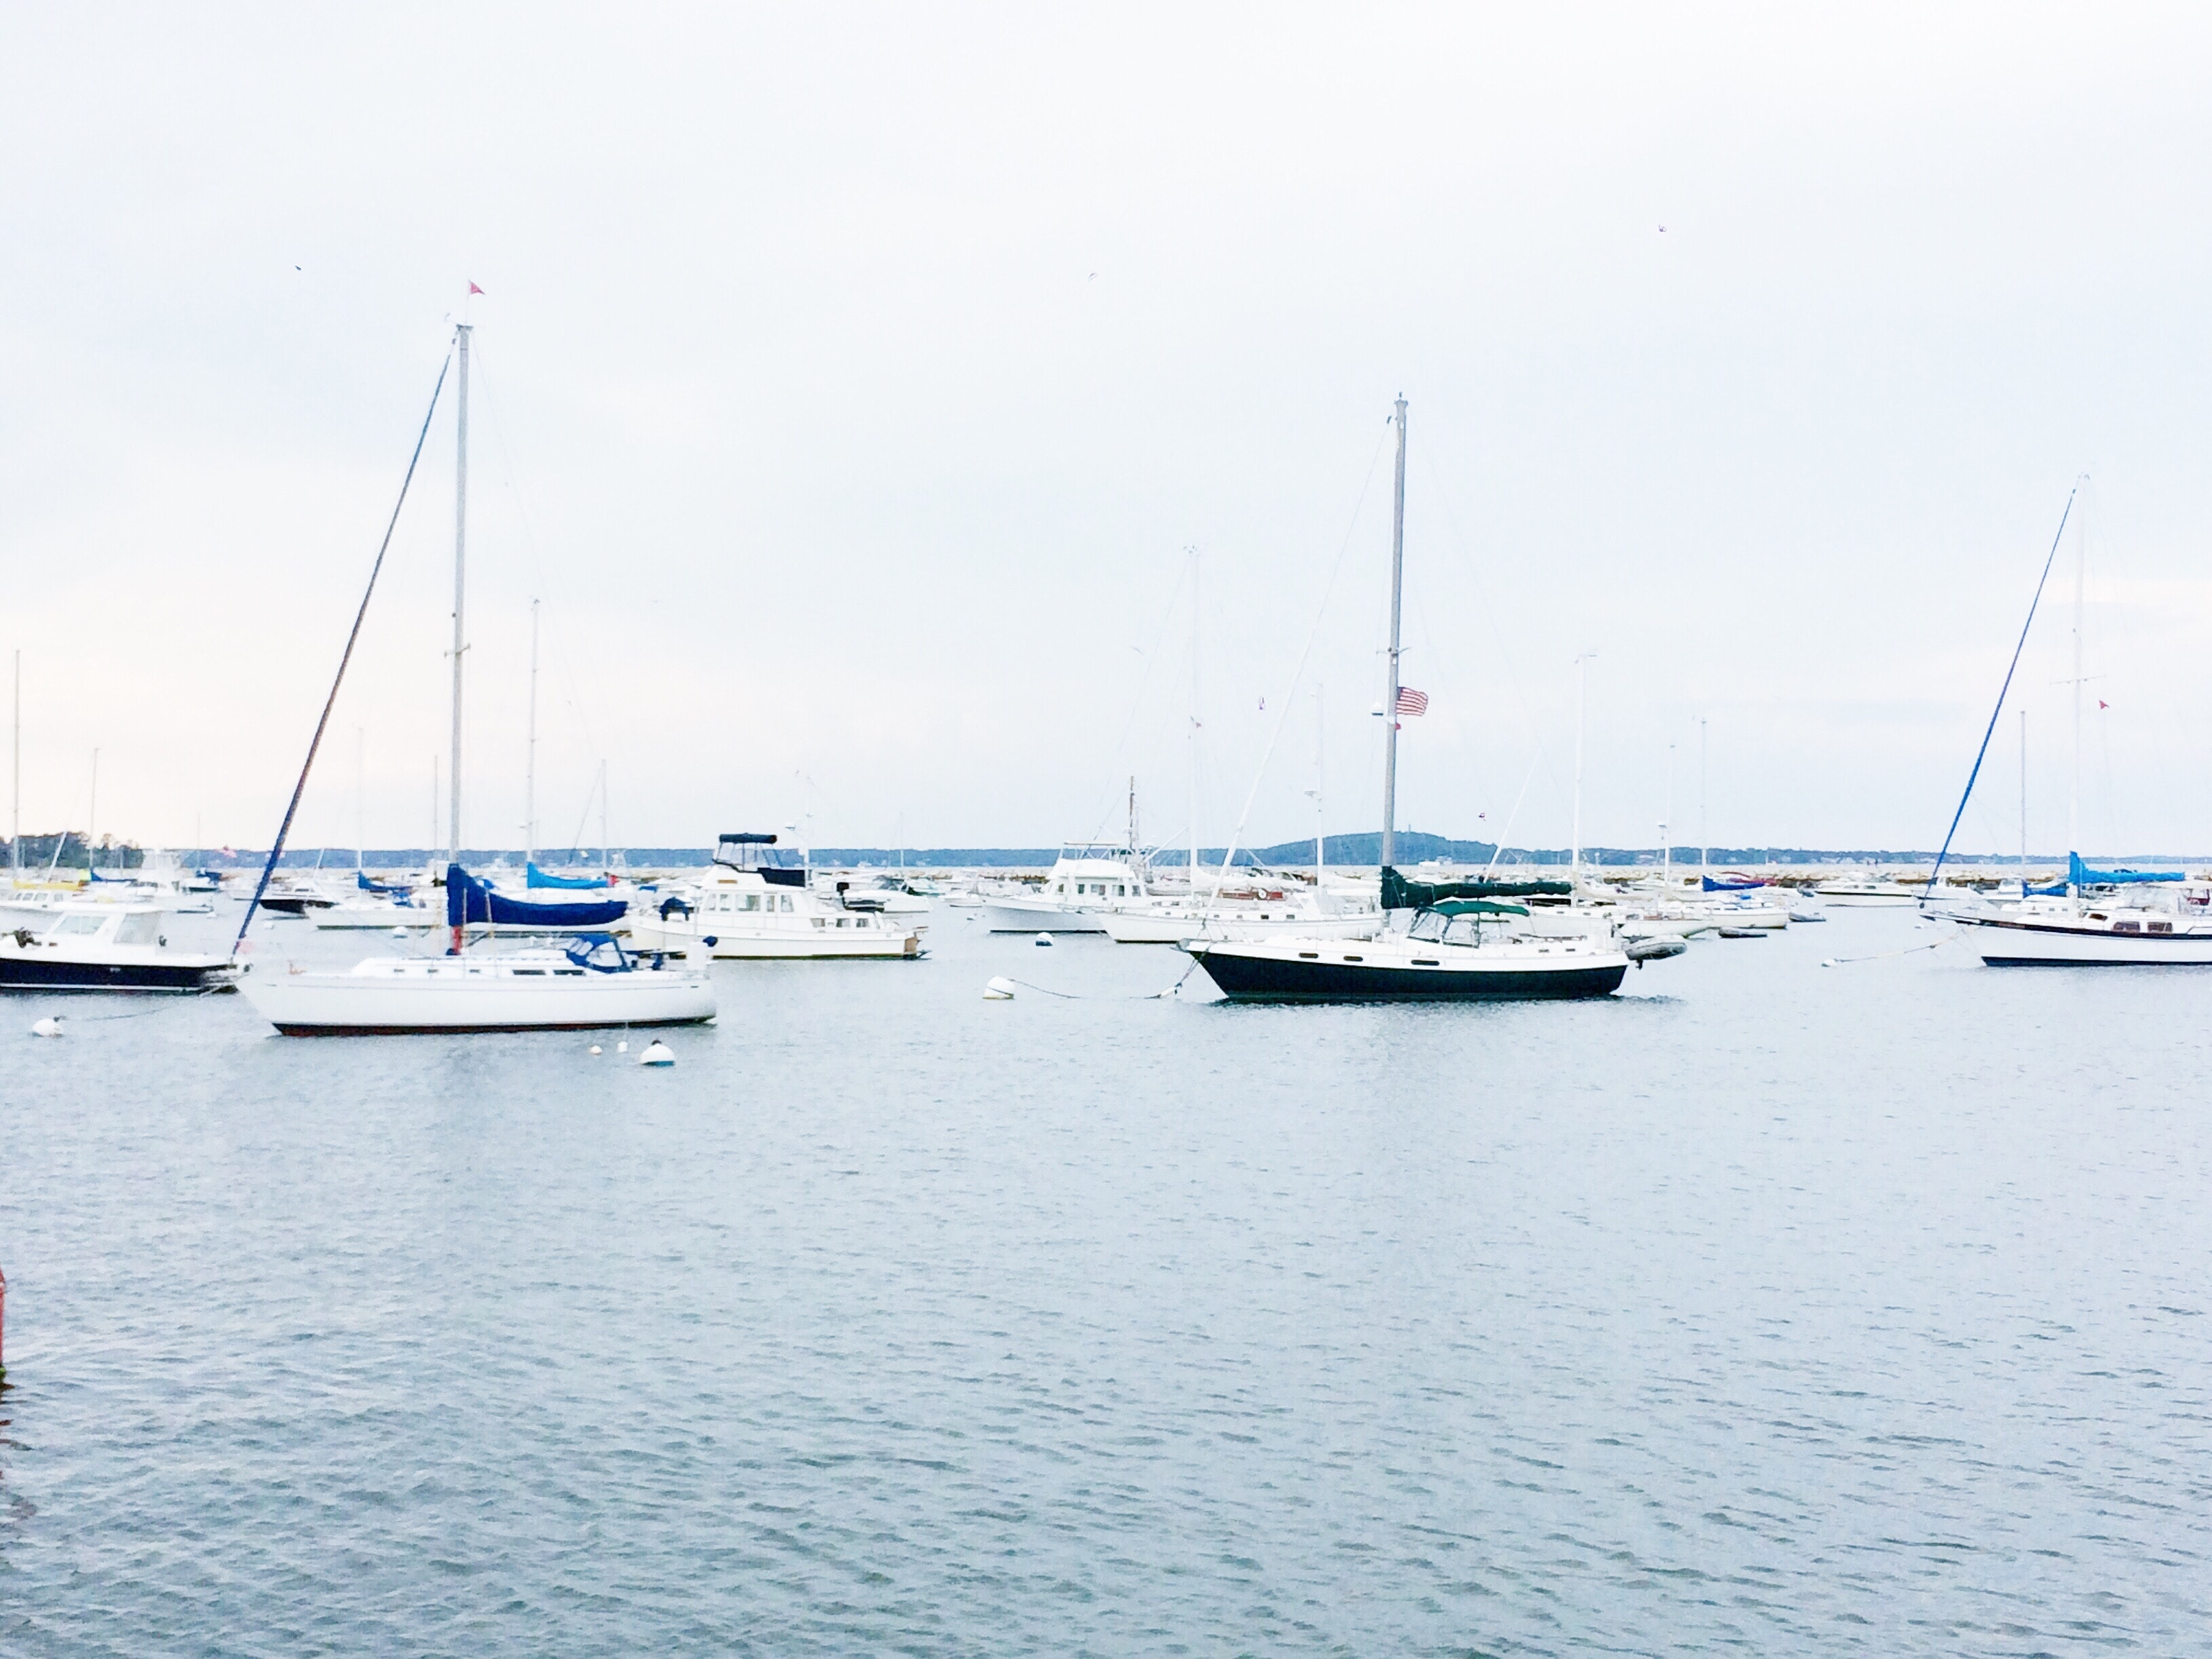 Photography of Sailboats in the Sea, Boats, Ships, Watercrafts, Water, HQ Photo